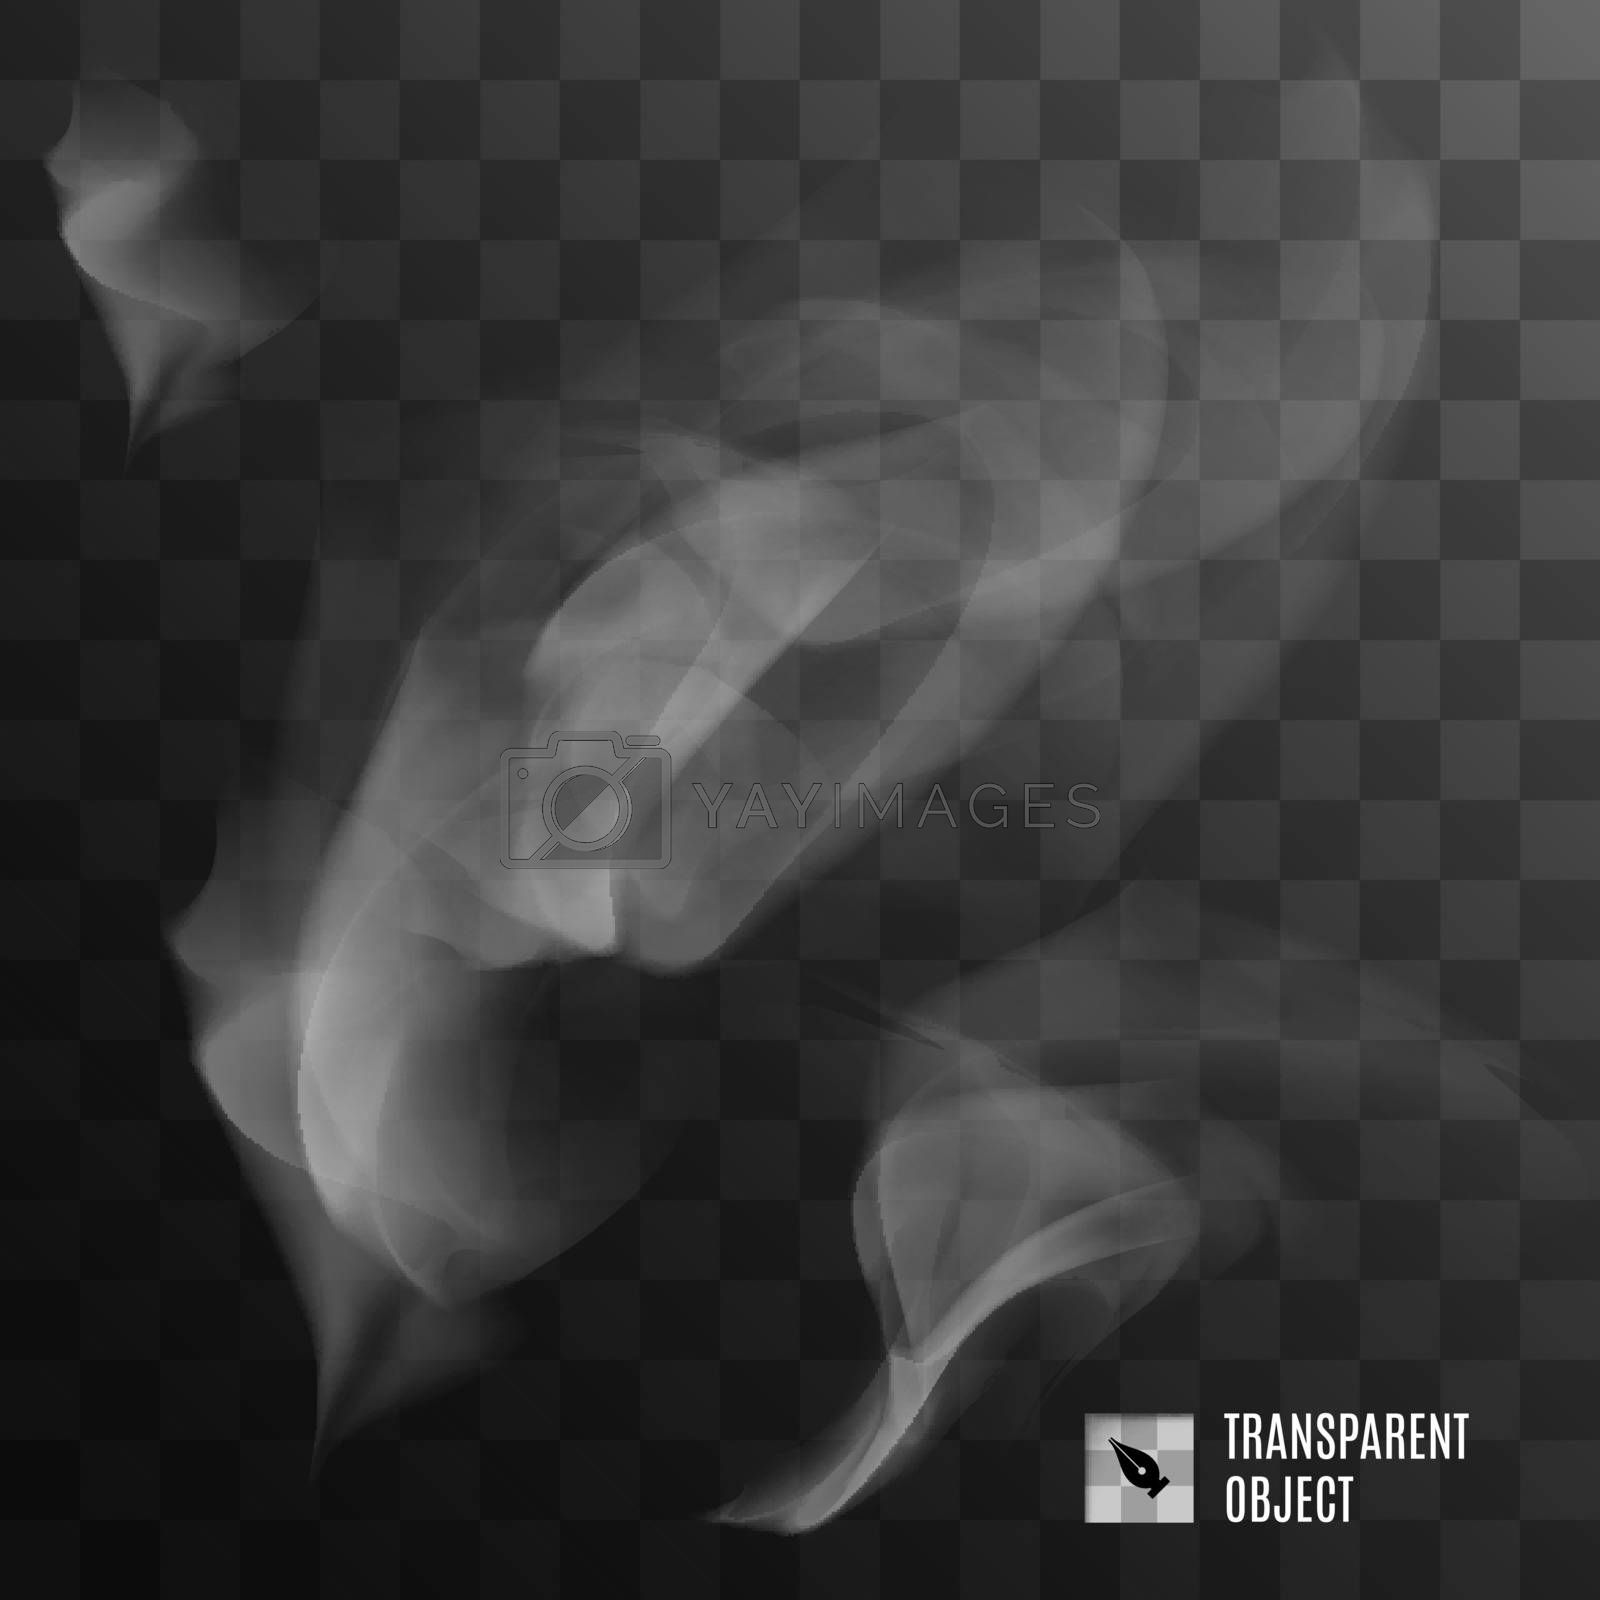 Realistic Smoke or Fog on Transparent Background. Cool Template for Creative Ideas